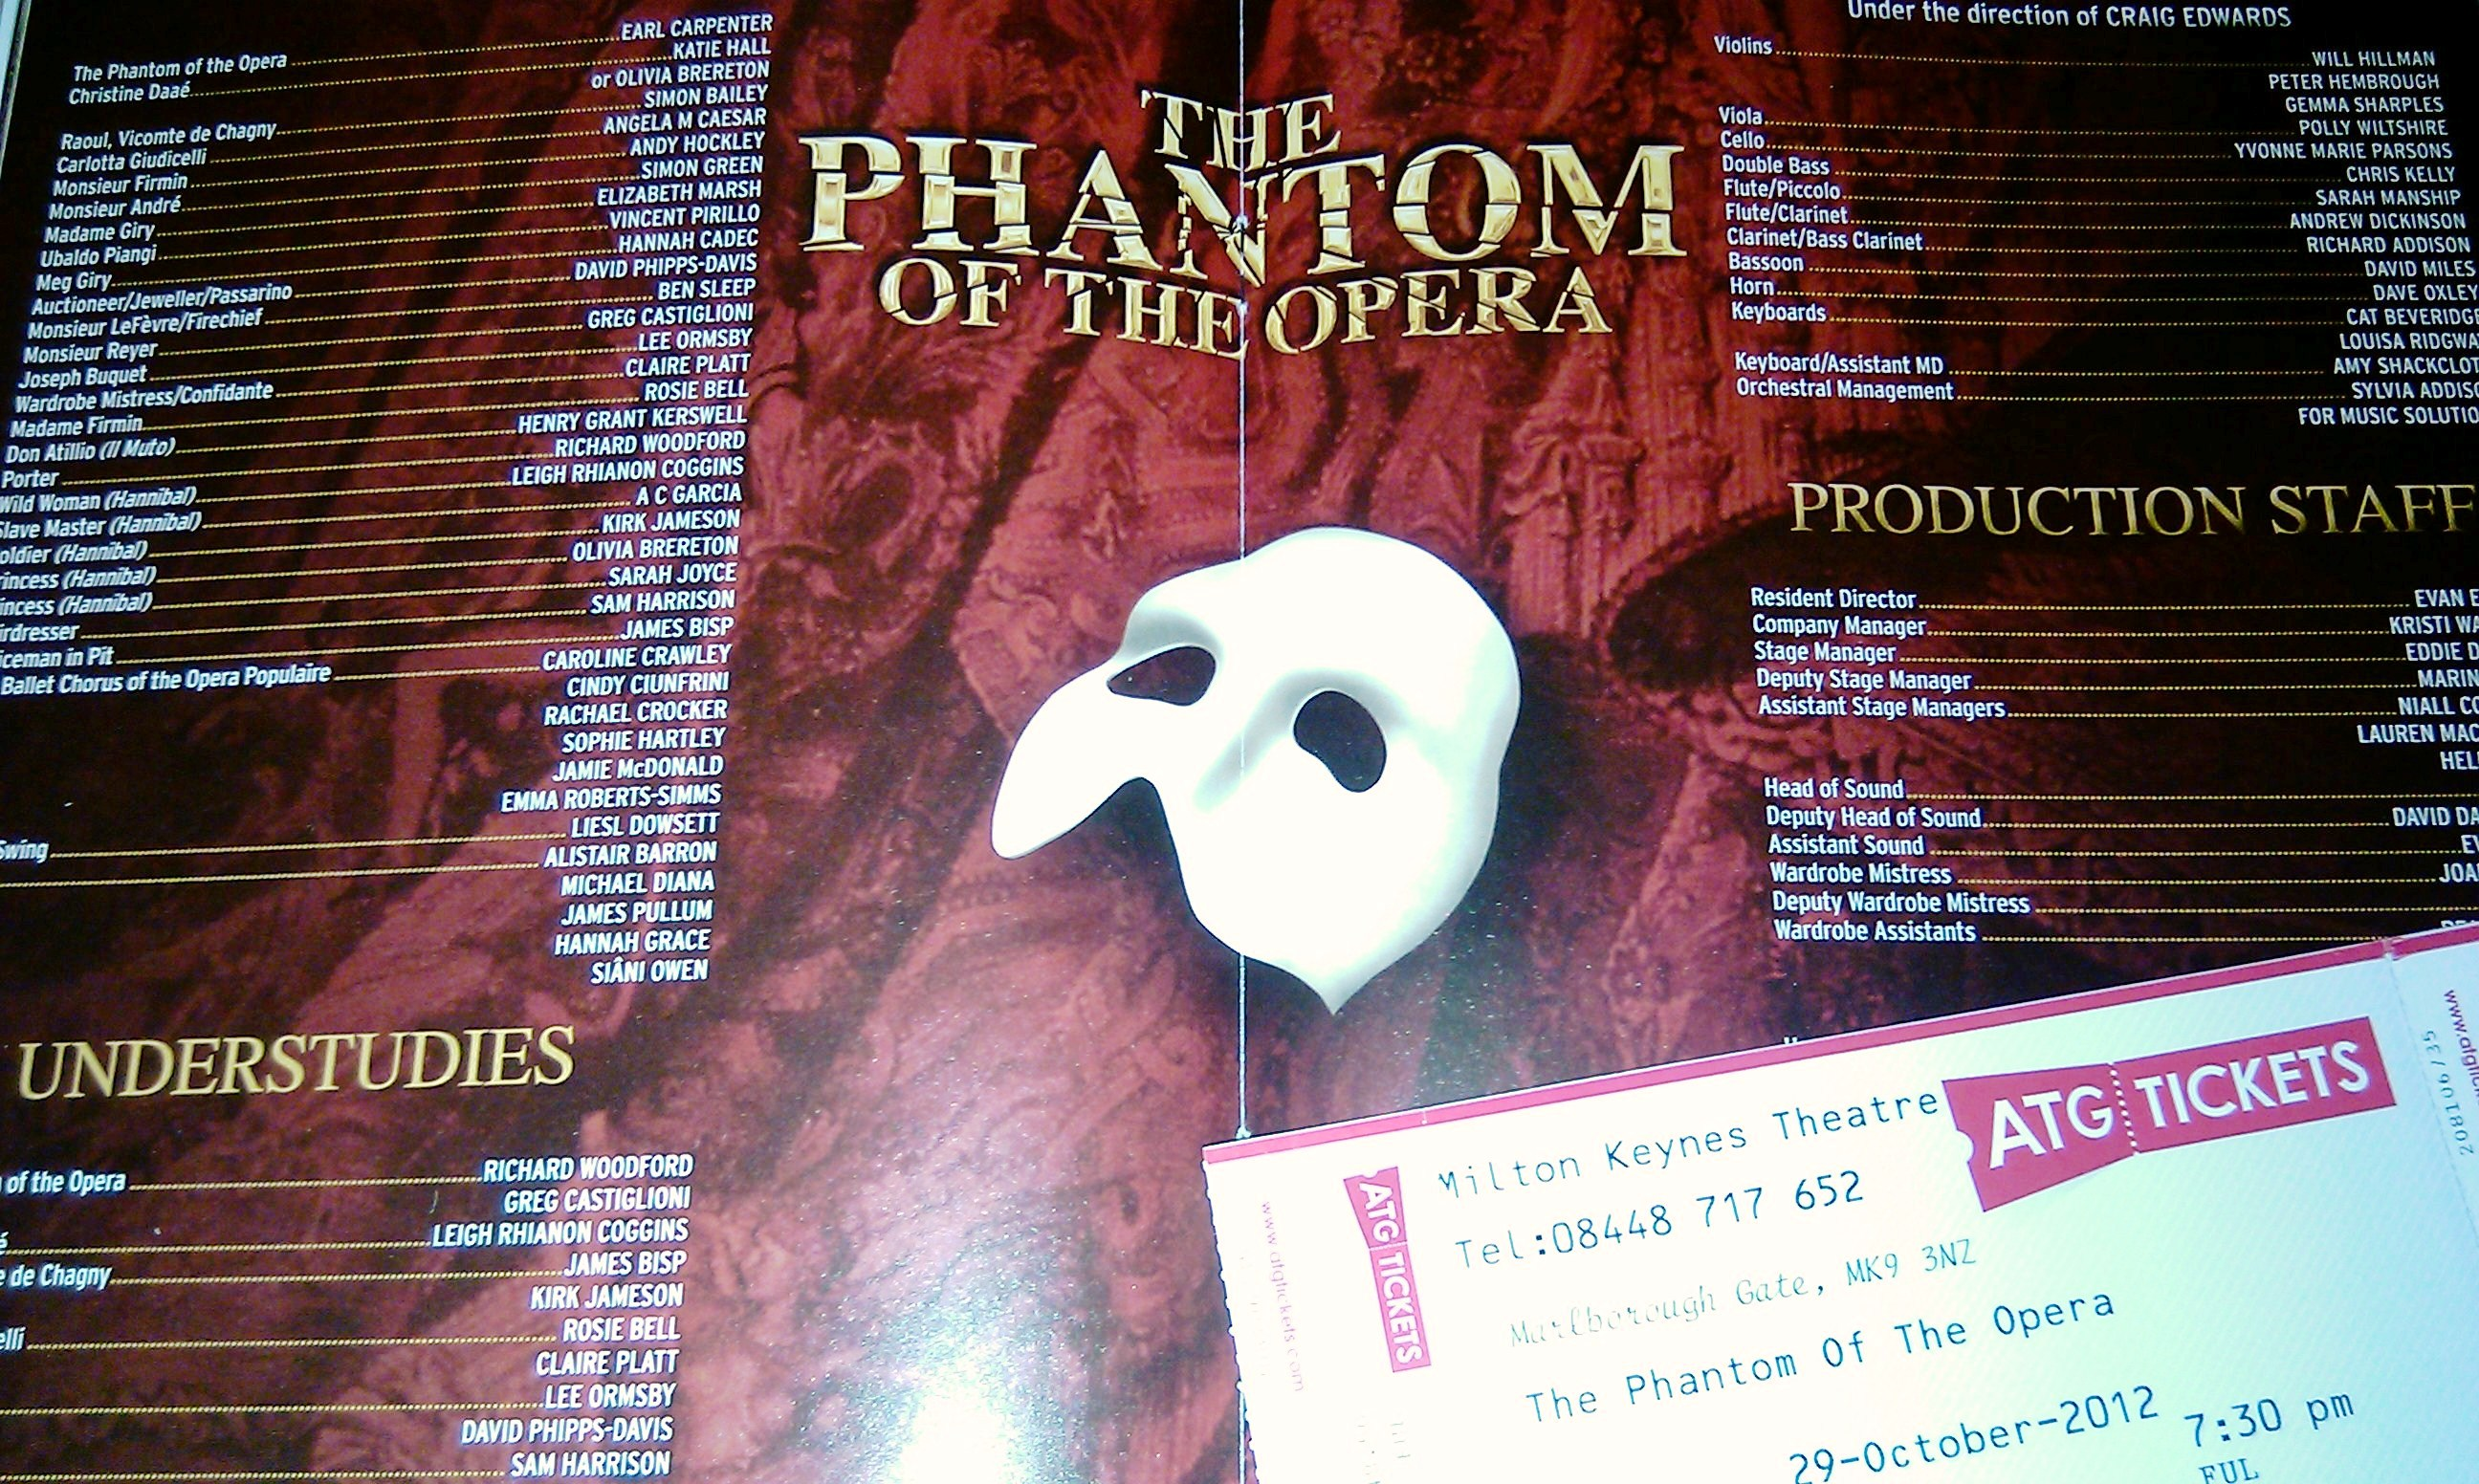 The Phantom of The Opera at Milton Keynes Theatre.